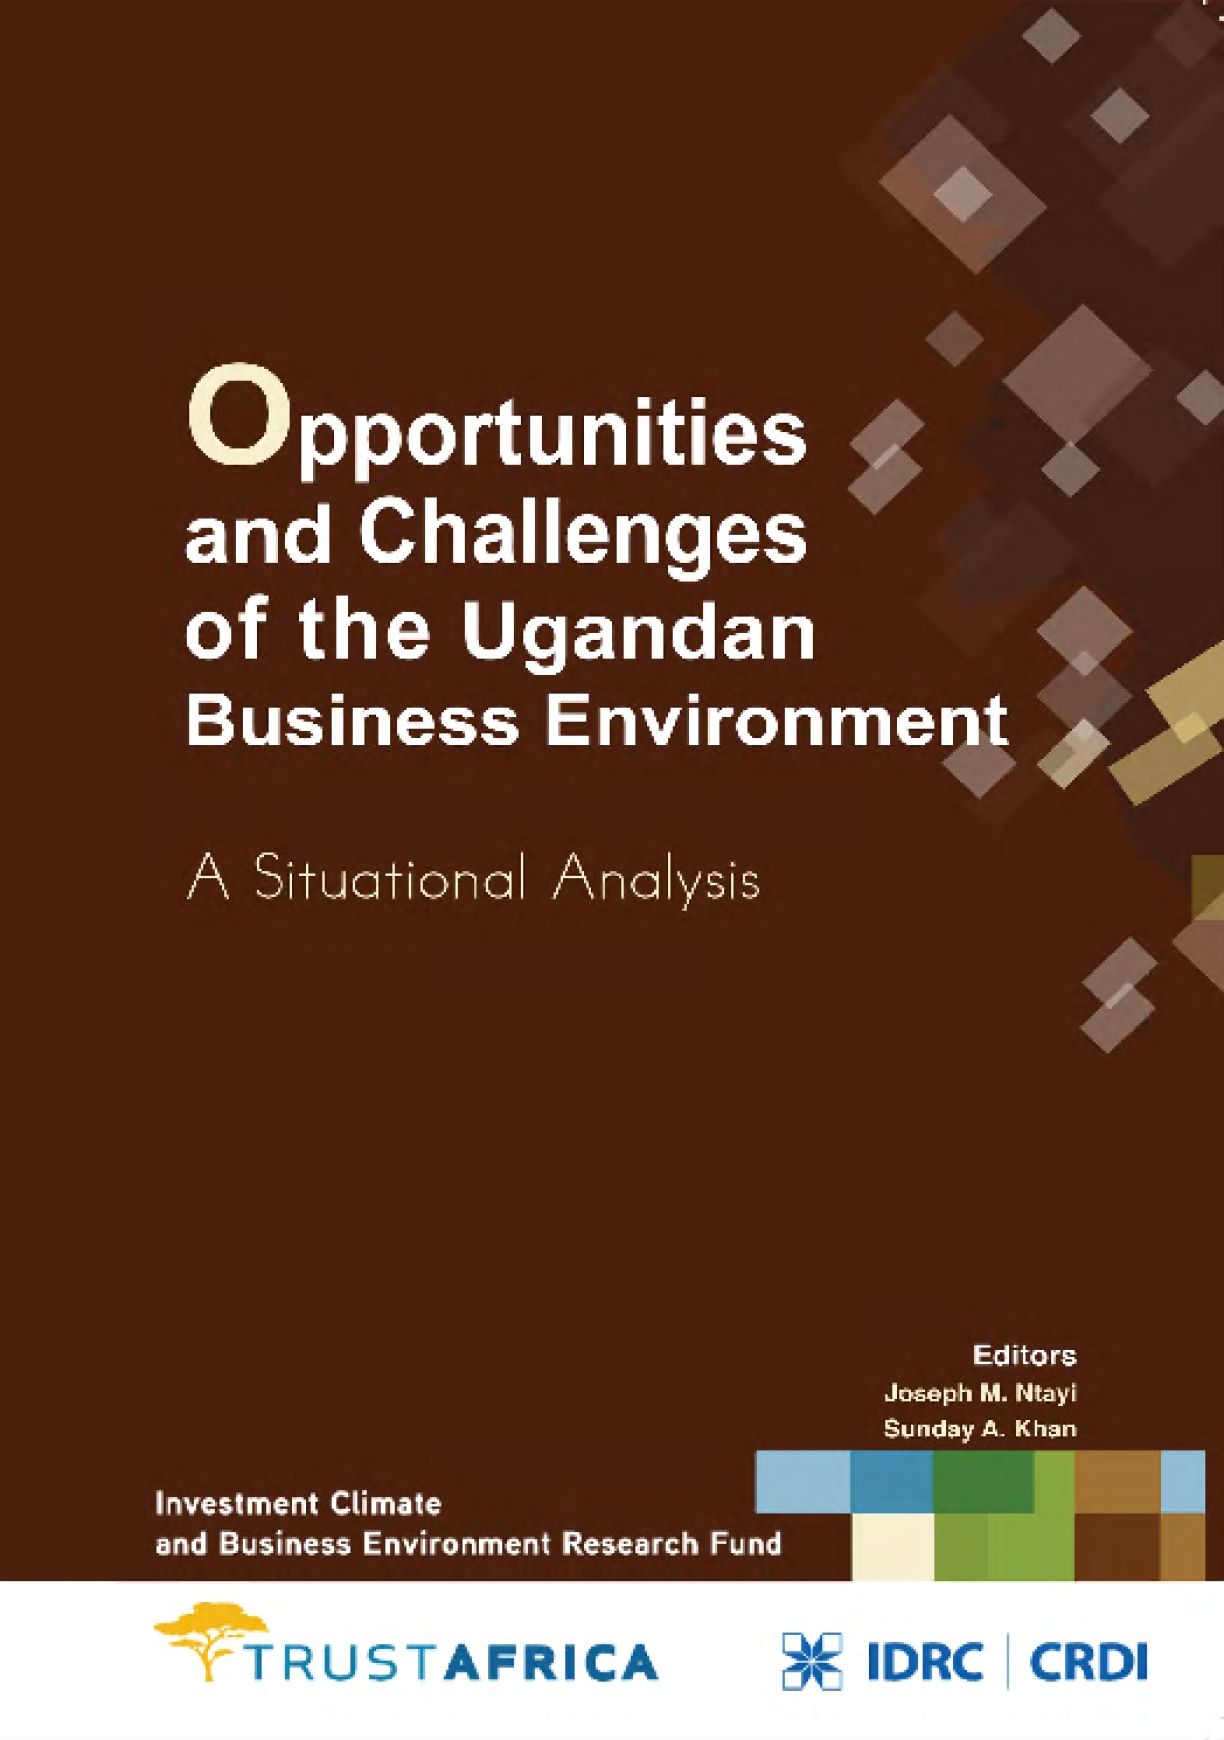 Opportunities and Challenges of the Ugandan Business Environment